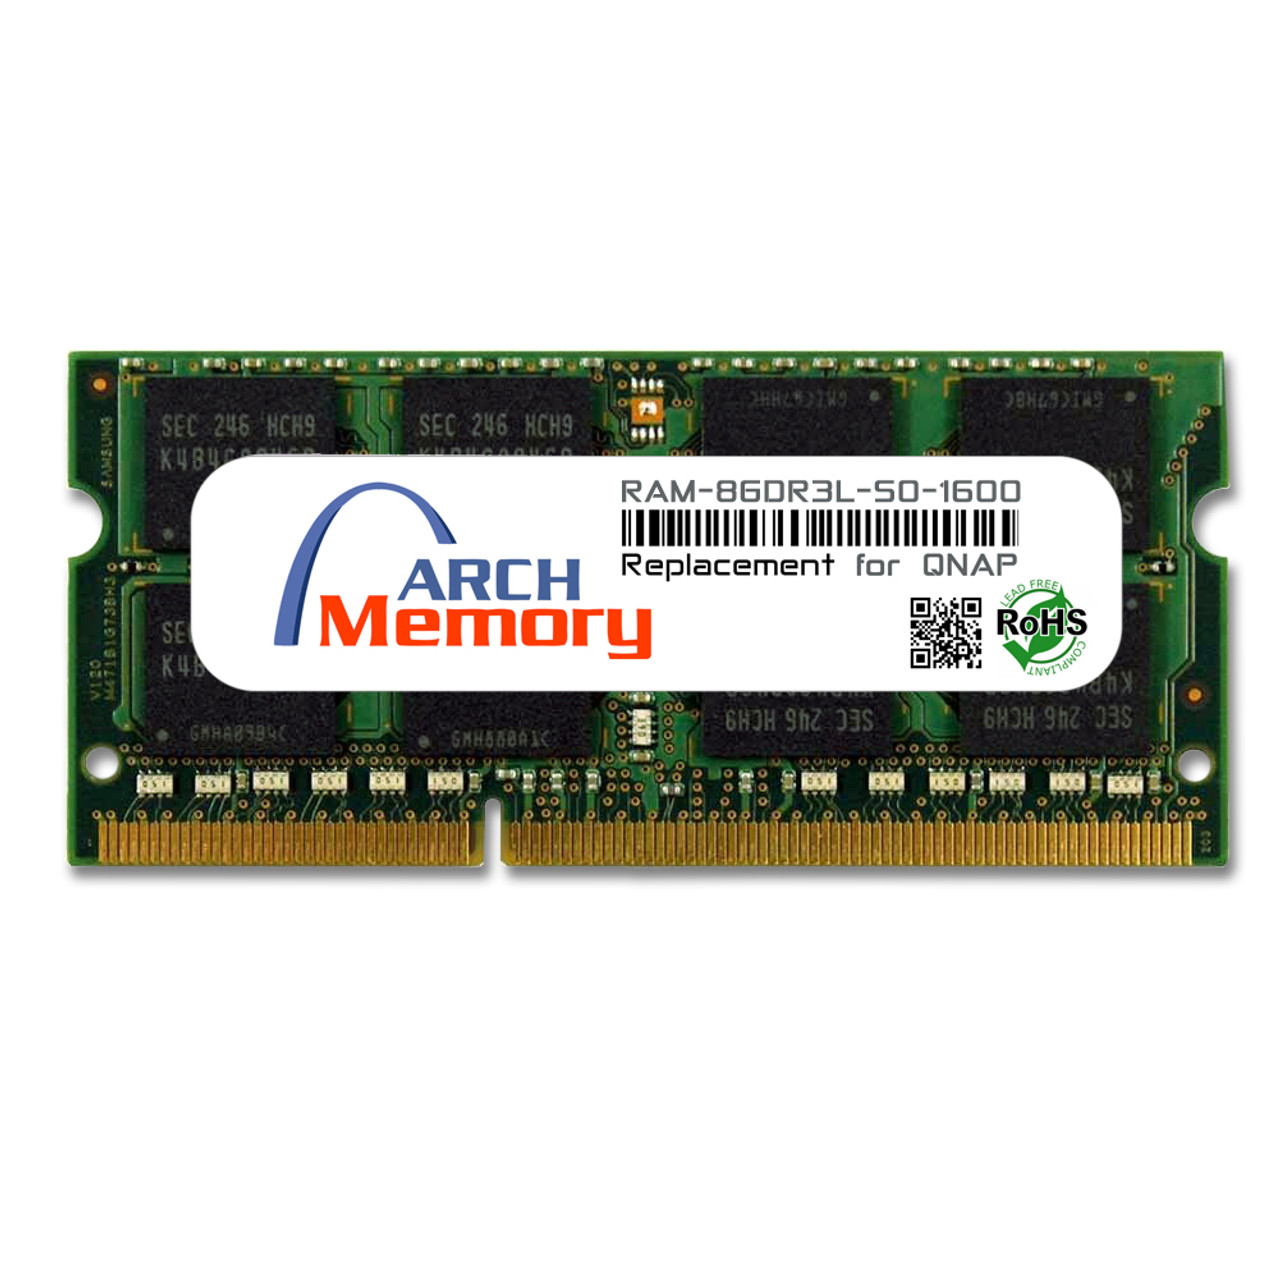 8GB RAM-8GDR3L-SO-1600 DDR3L-1600 PC3-12800 204-Pin SODIMM RAM | Memory for QNAP